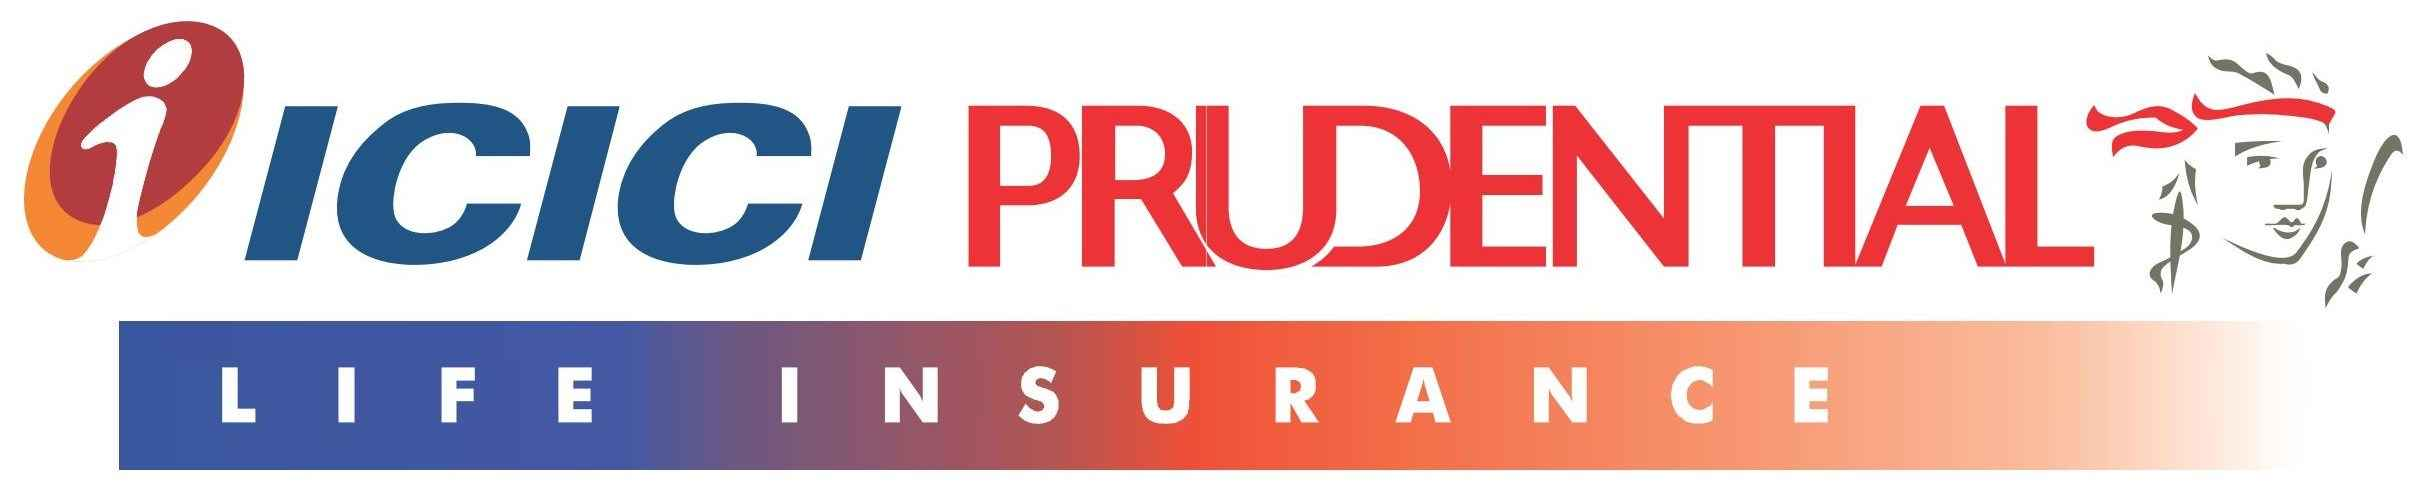 Prudential Life Insurance Quote Prudential Life Insurance Quote Enchanting Download Prudential